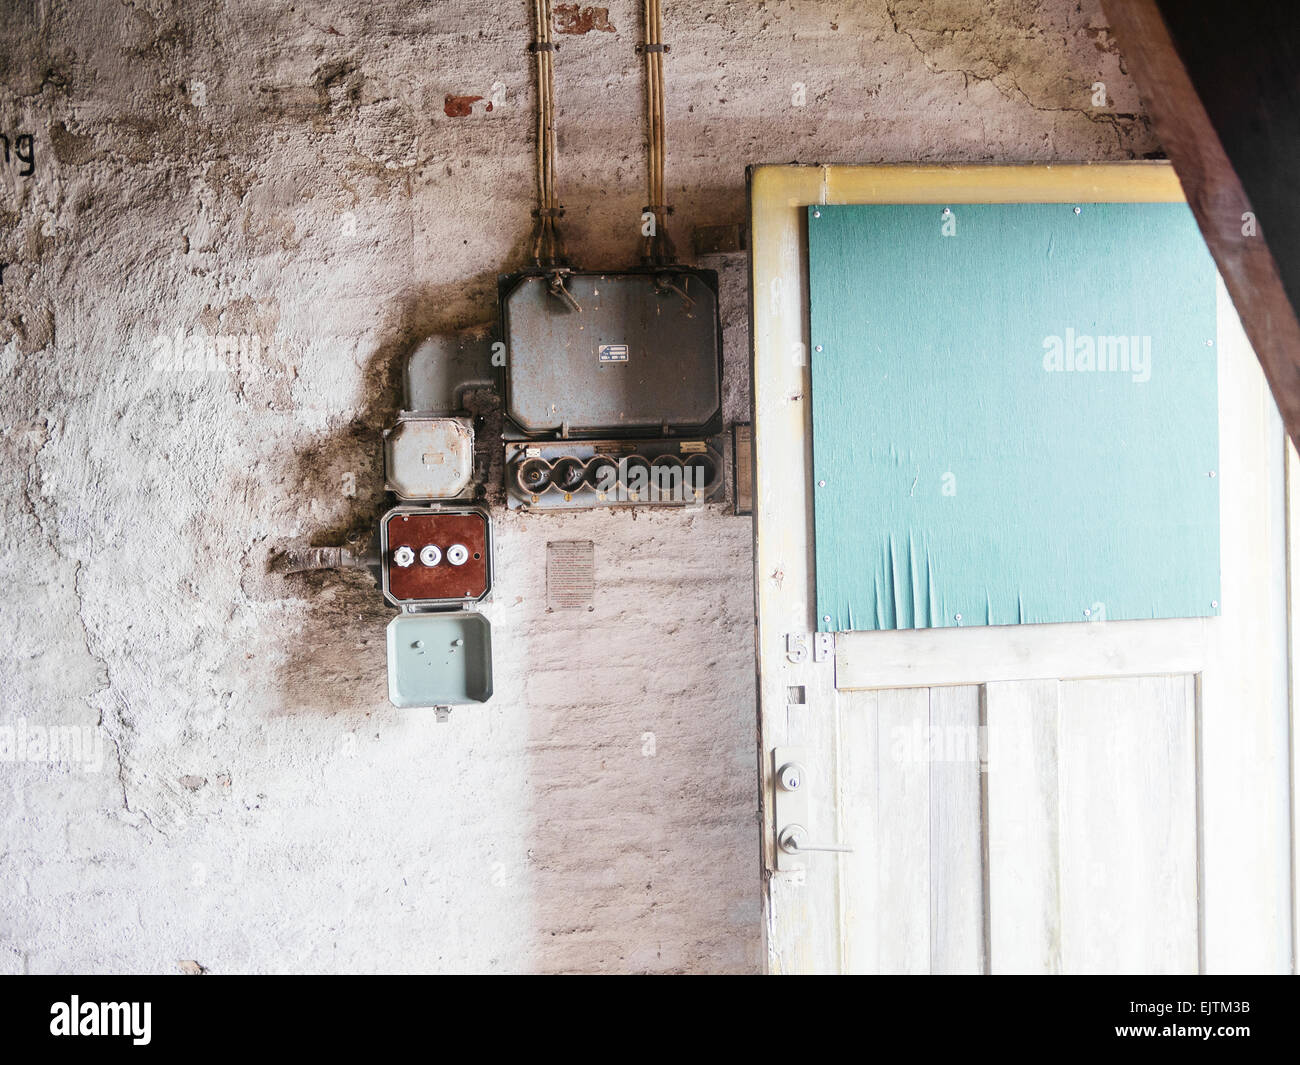 Fuse Box House Stock Photos & Fuse Box House Stock Images ... Old Out House Fuse Box Short Version on old house ideas, old house electrical wiring, old house photography, old house on fire, old house dreams, old house balloon construction, old red house, old house in woods, old house roof, old tool box, old utility box, old time houses, old breaker box, old lock box, old house trailers, old post box, old house wiring types, old house moulding, old house doors, old house interiors,